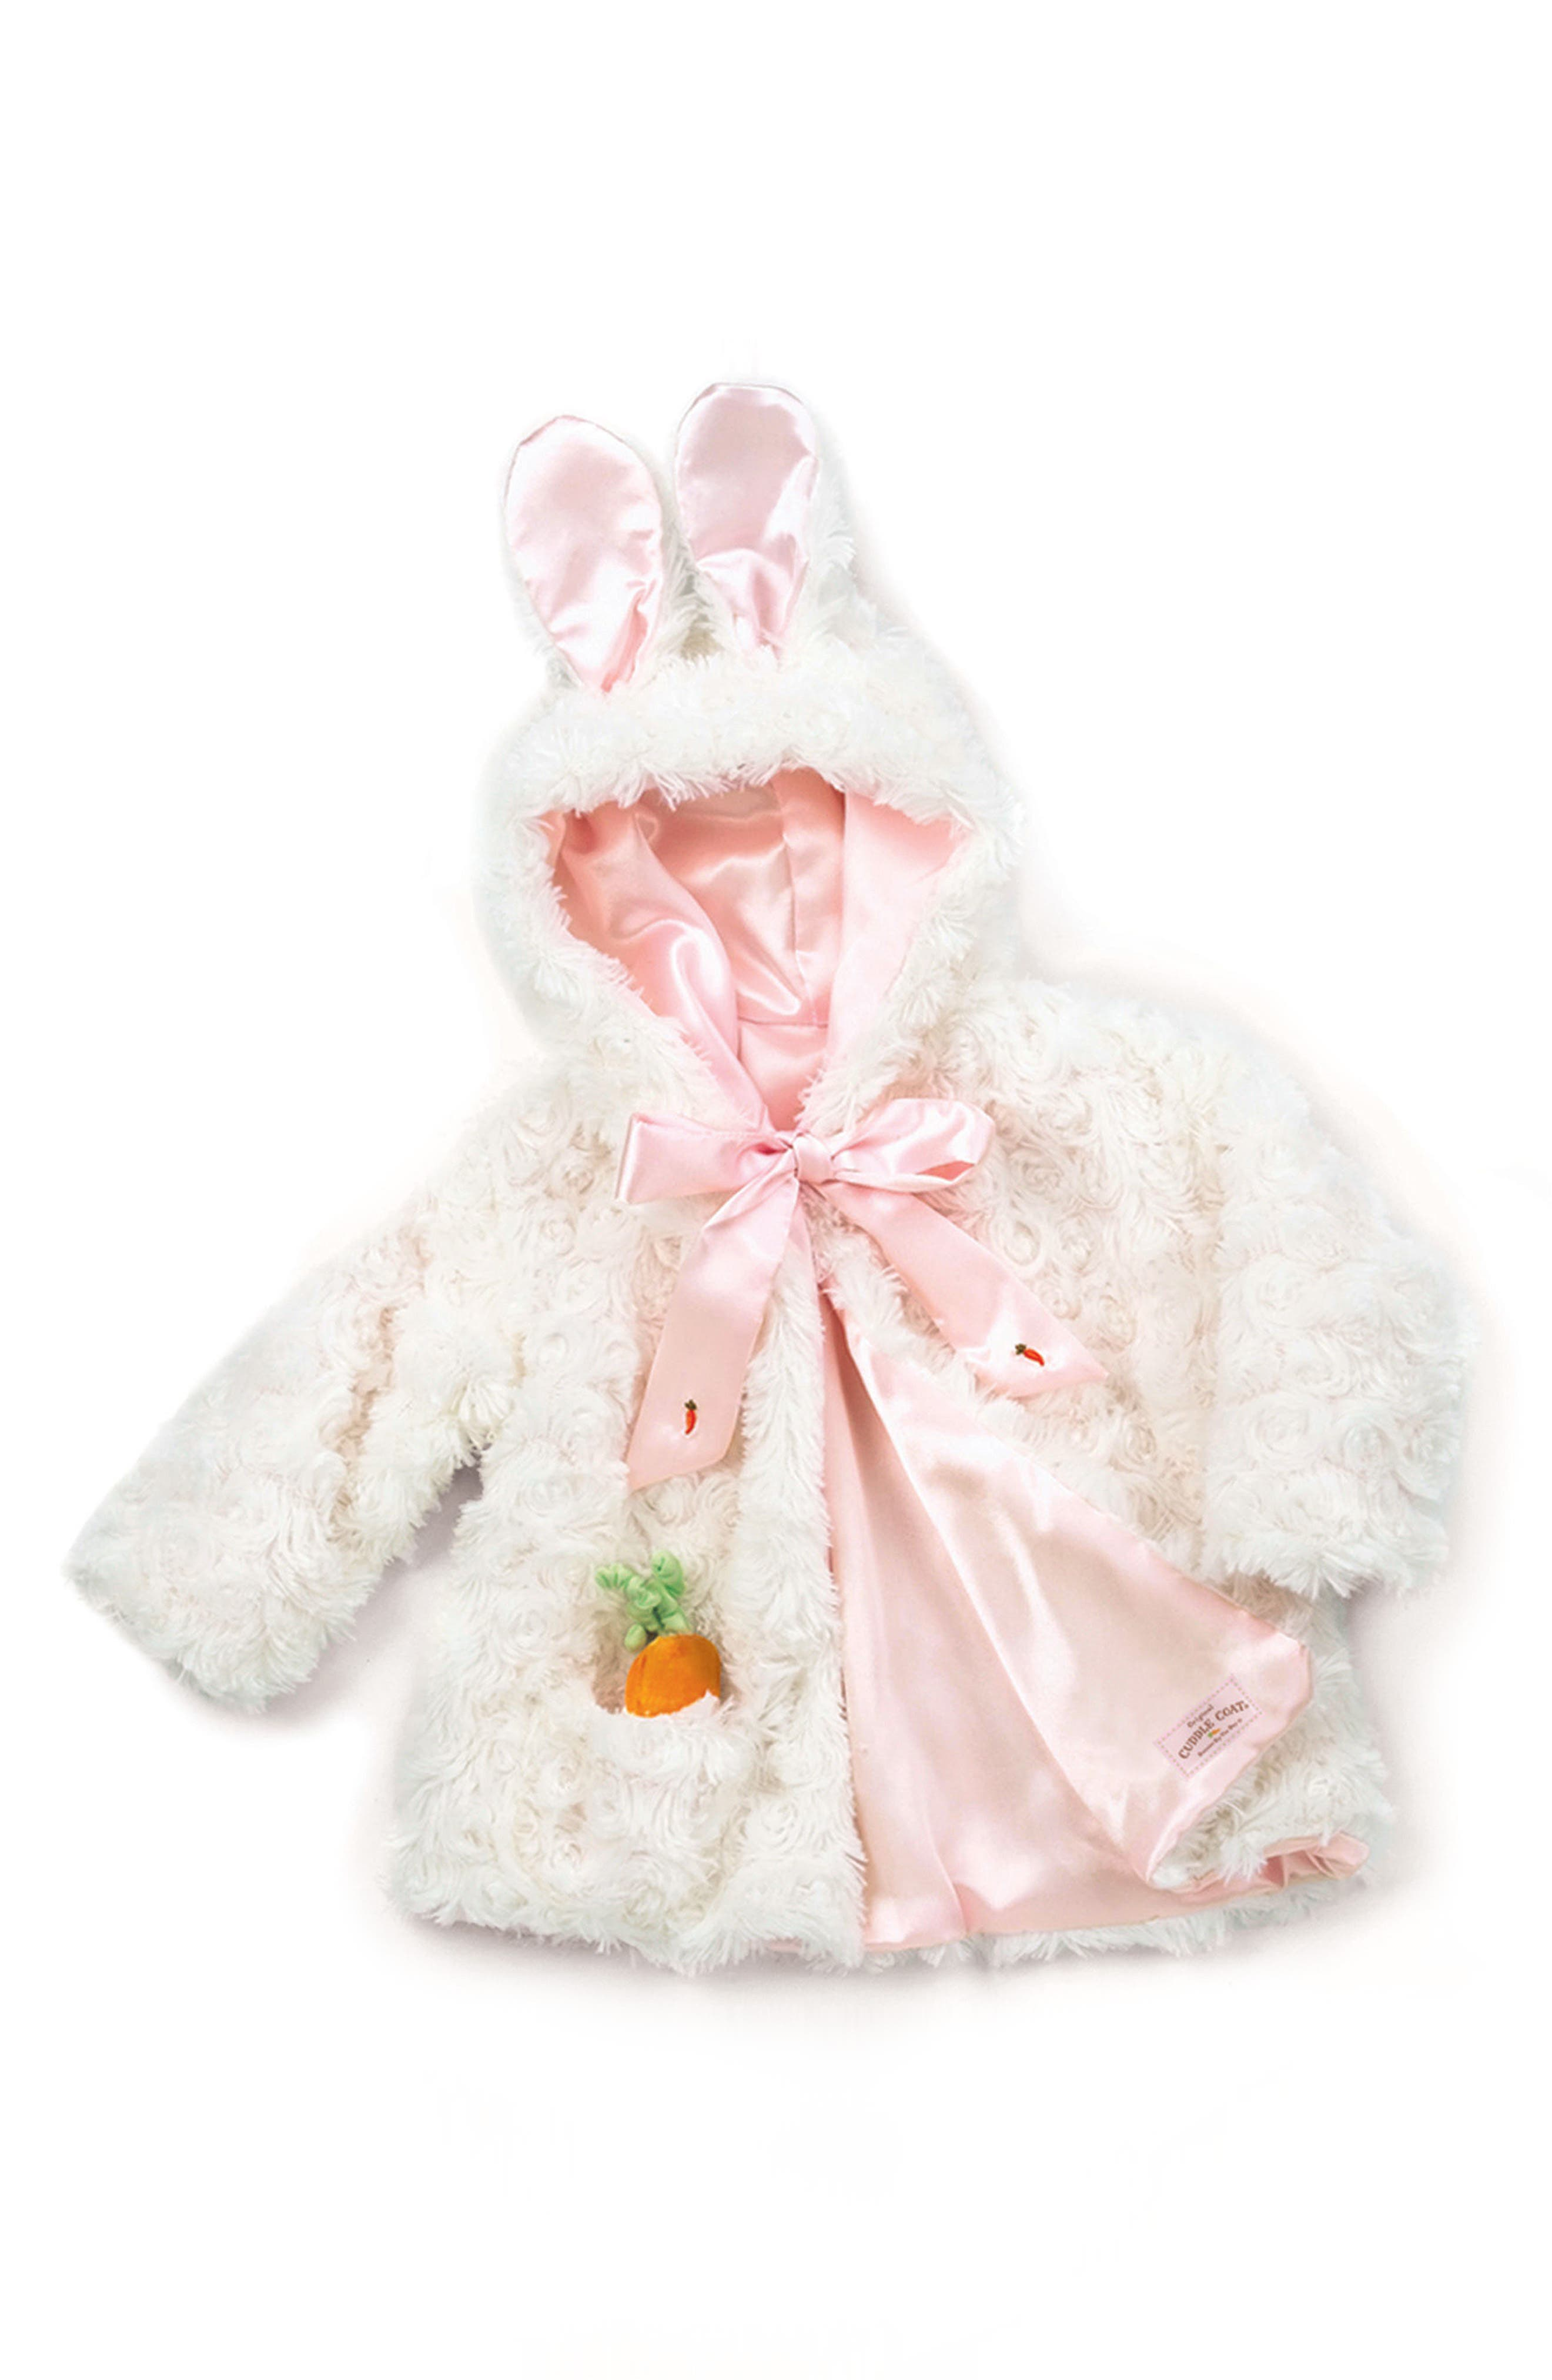 BUNNIES BY THE BAY,                             Cuddle Coat,                             Main thumbnail 1, color,                             100